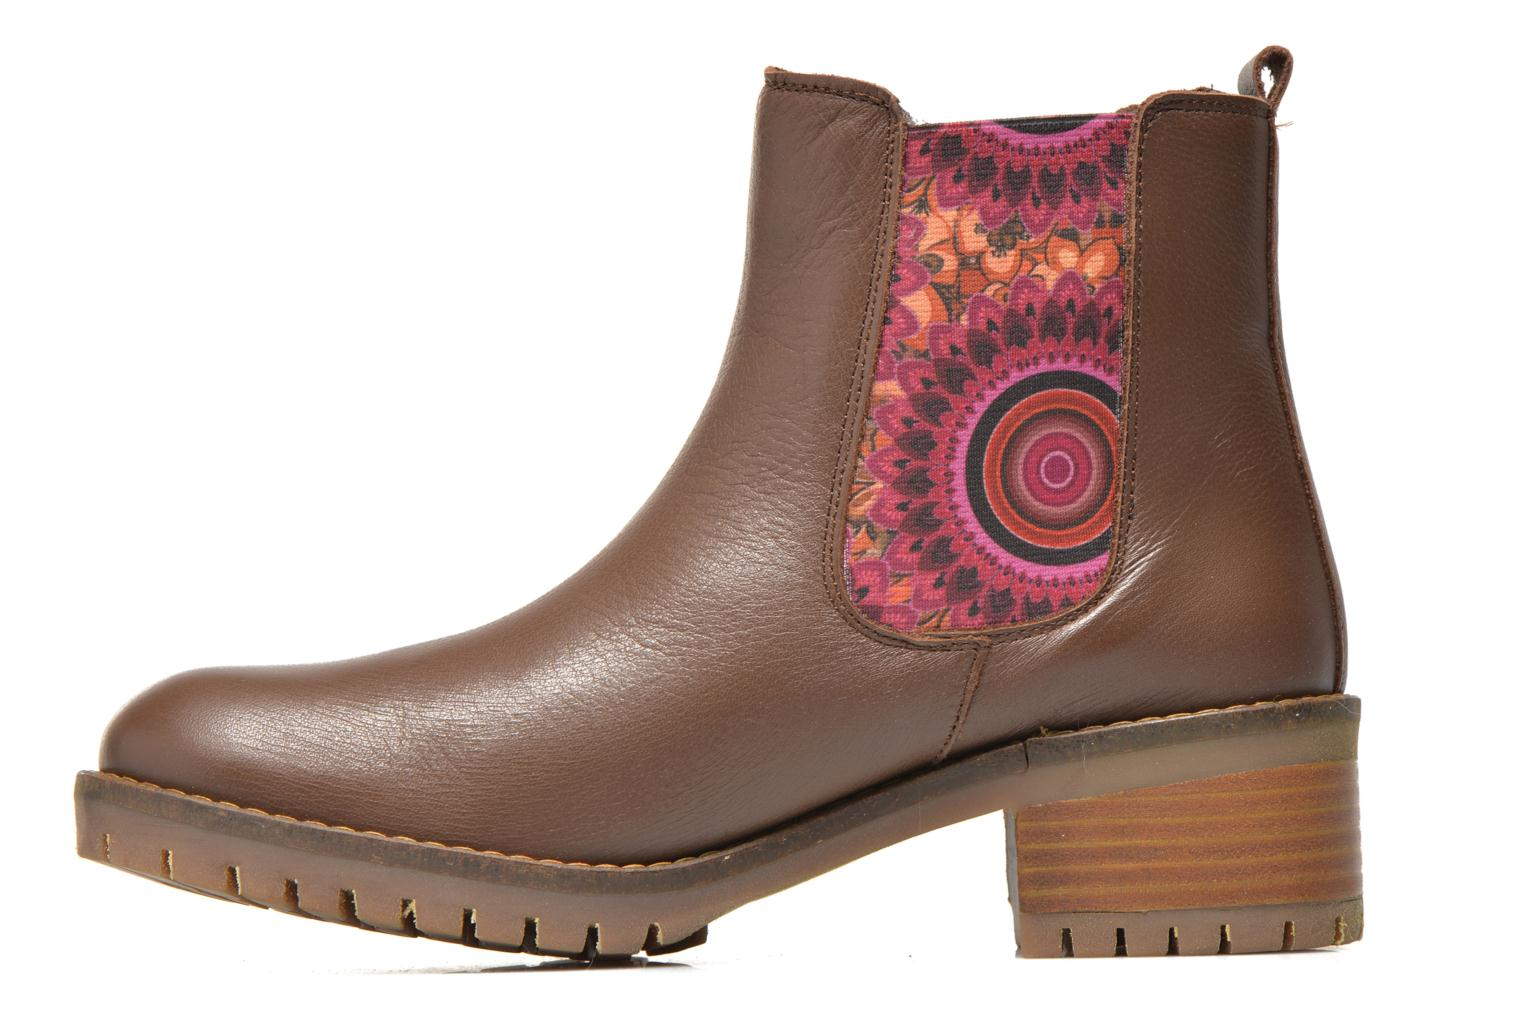 Bottines et boots Desigual Charly Marron vue face